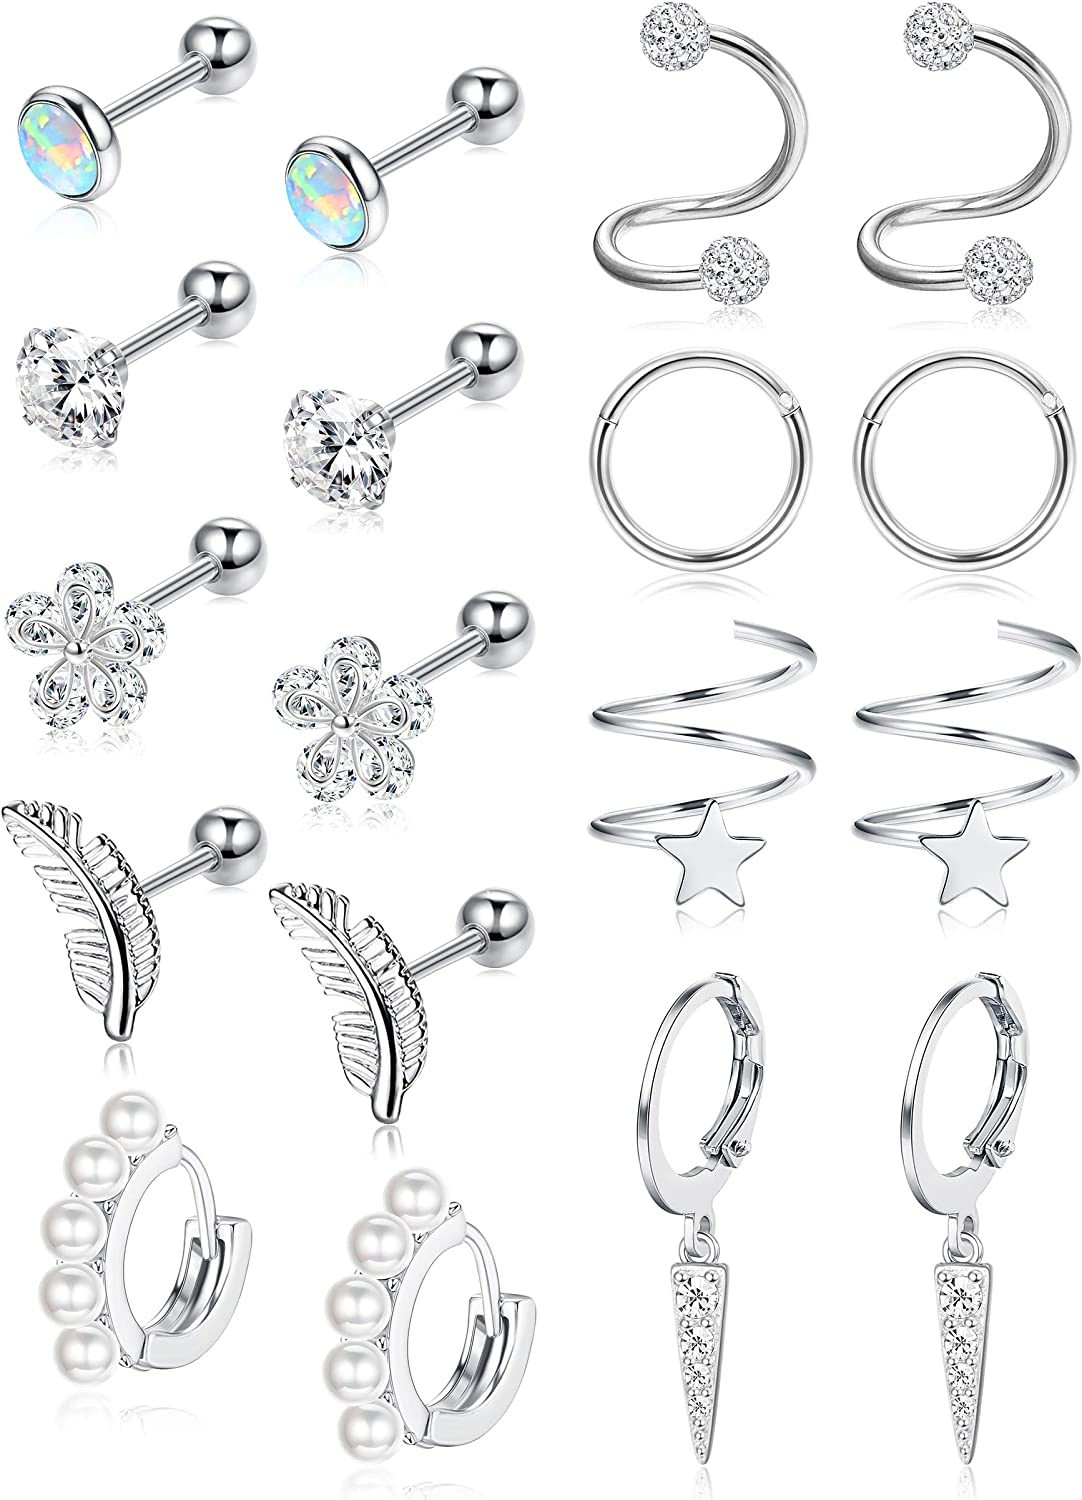 Subiceto 9 Pairs Cartilage Earrings Stud Set for Women Men 16G 18G 20G Tragus Earrings Cubic Zirconia Inlaid Helix Hoop Jewelry Flower Feather Earrings Hoop Cartilage Piercing CZ Stud Earrings